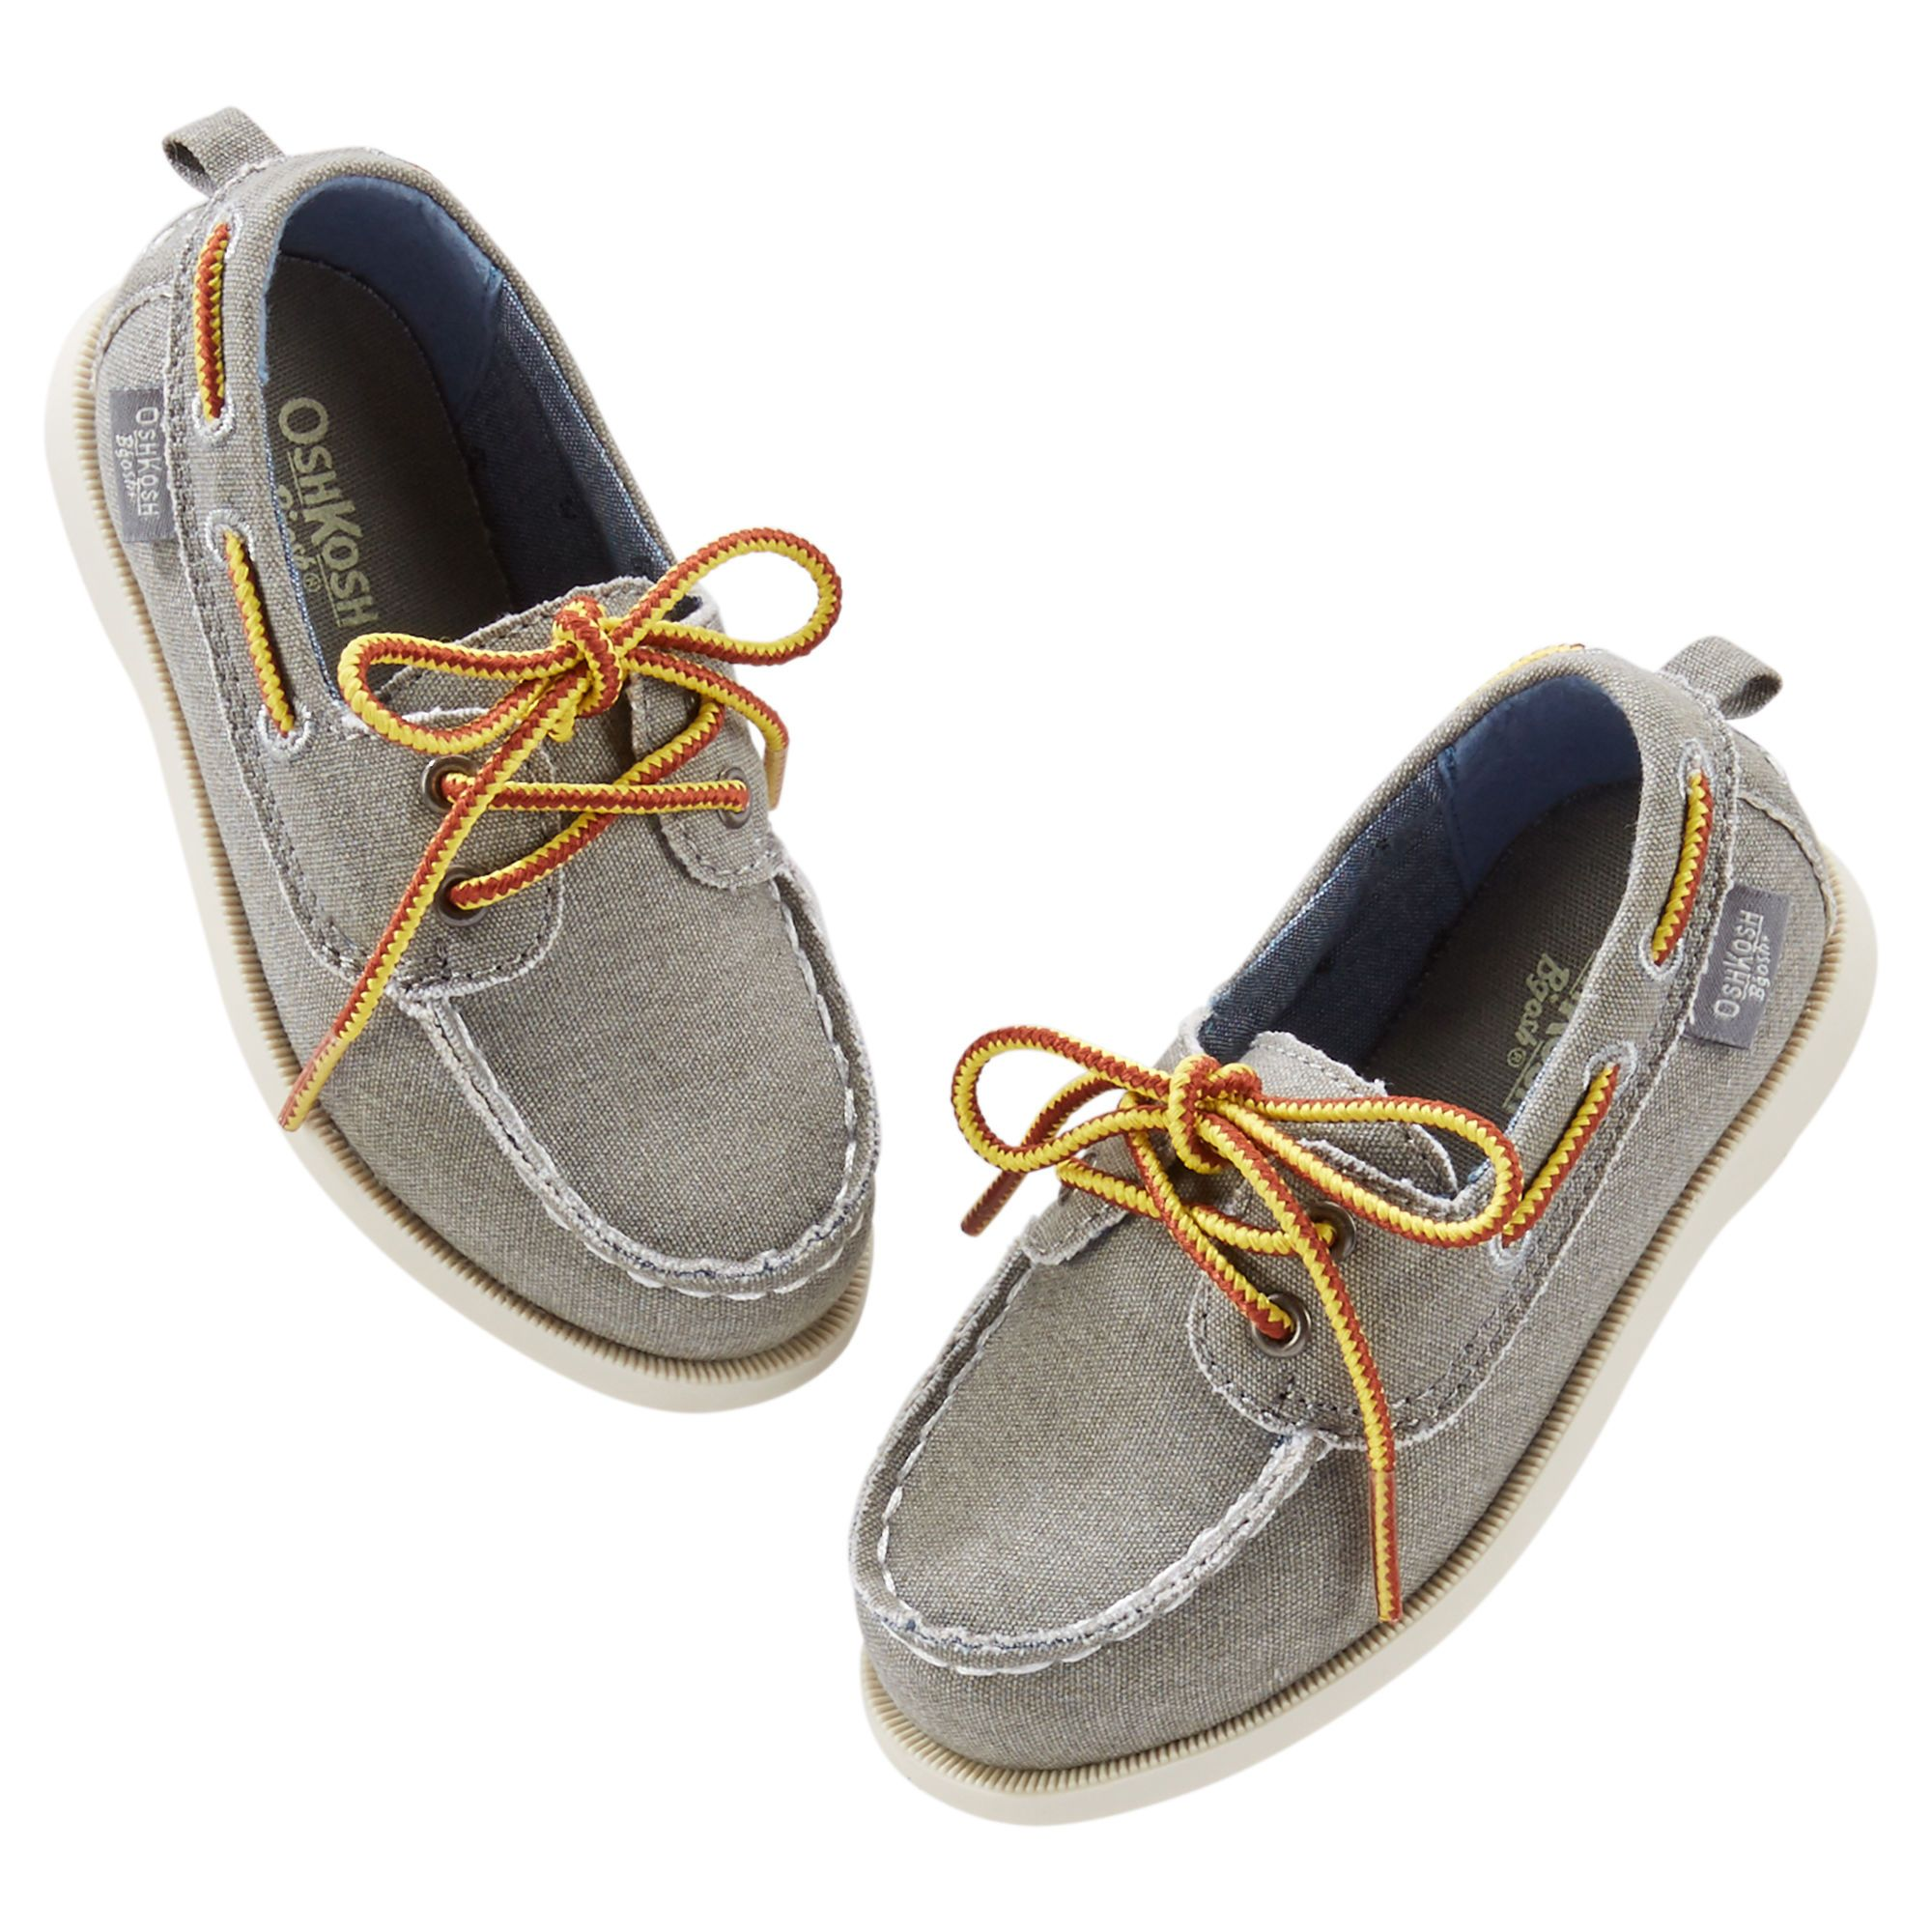 OshKosh Boat Shoes